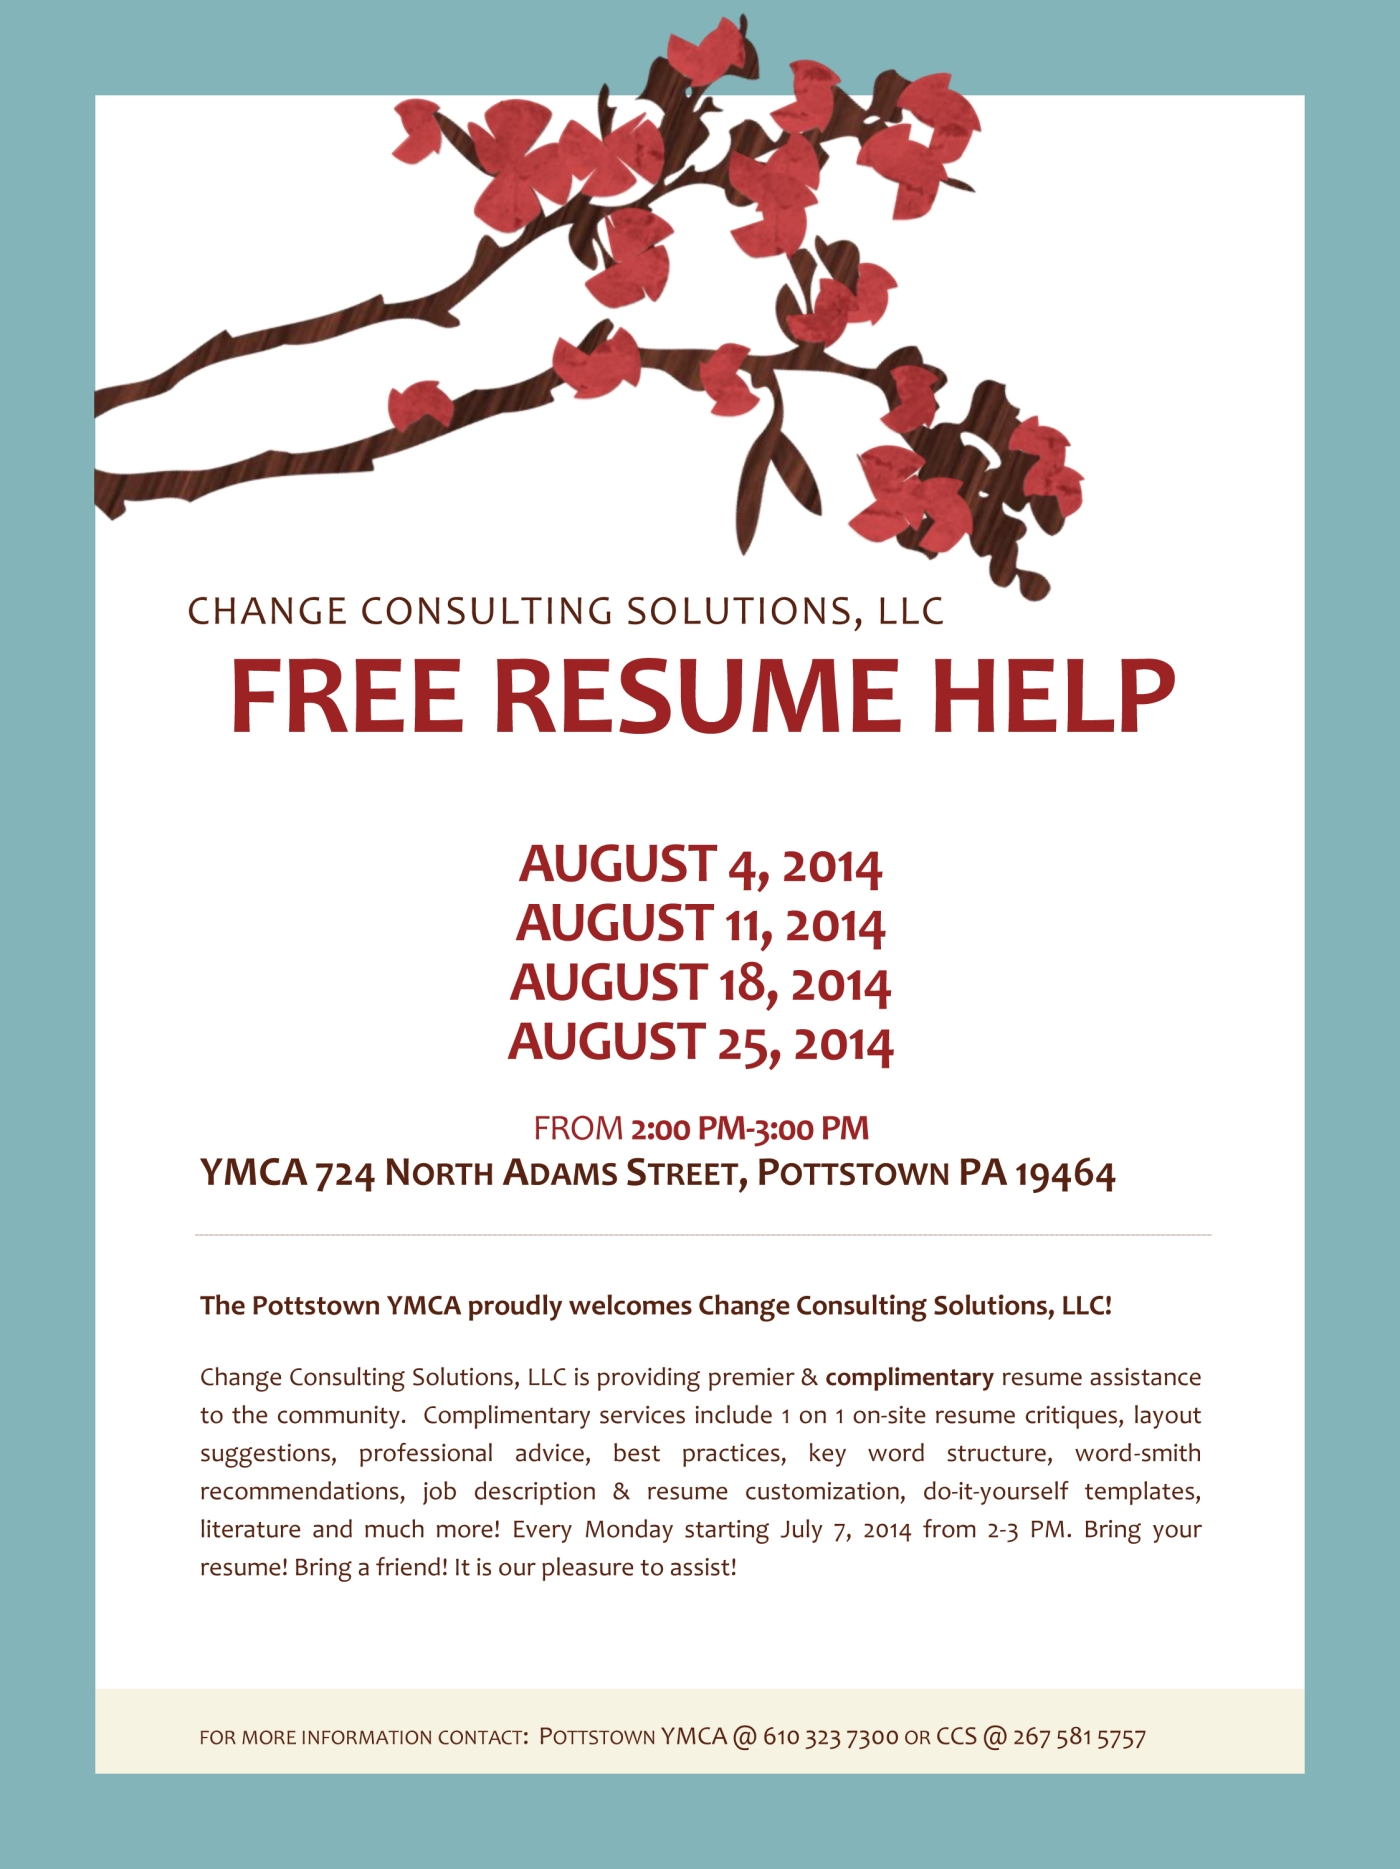 Free Resume Help At Pottstown Ymca Roys Rants For Your Information